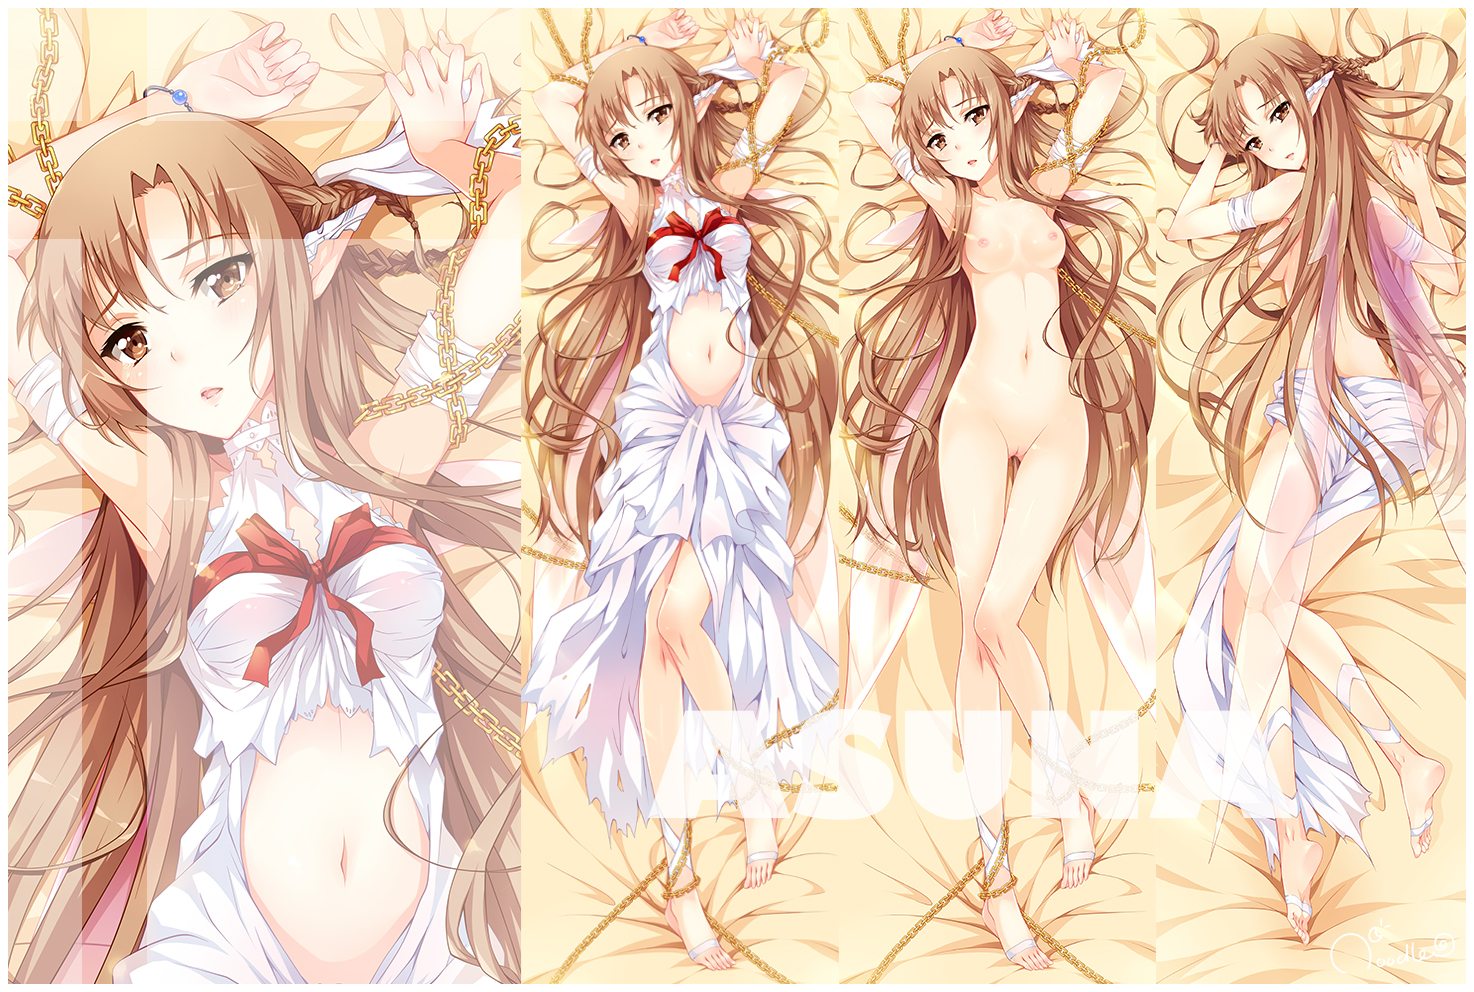 Sword art online naked pictures sex images